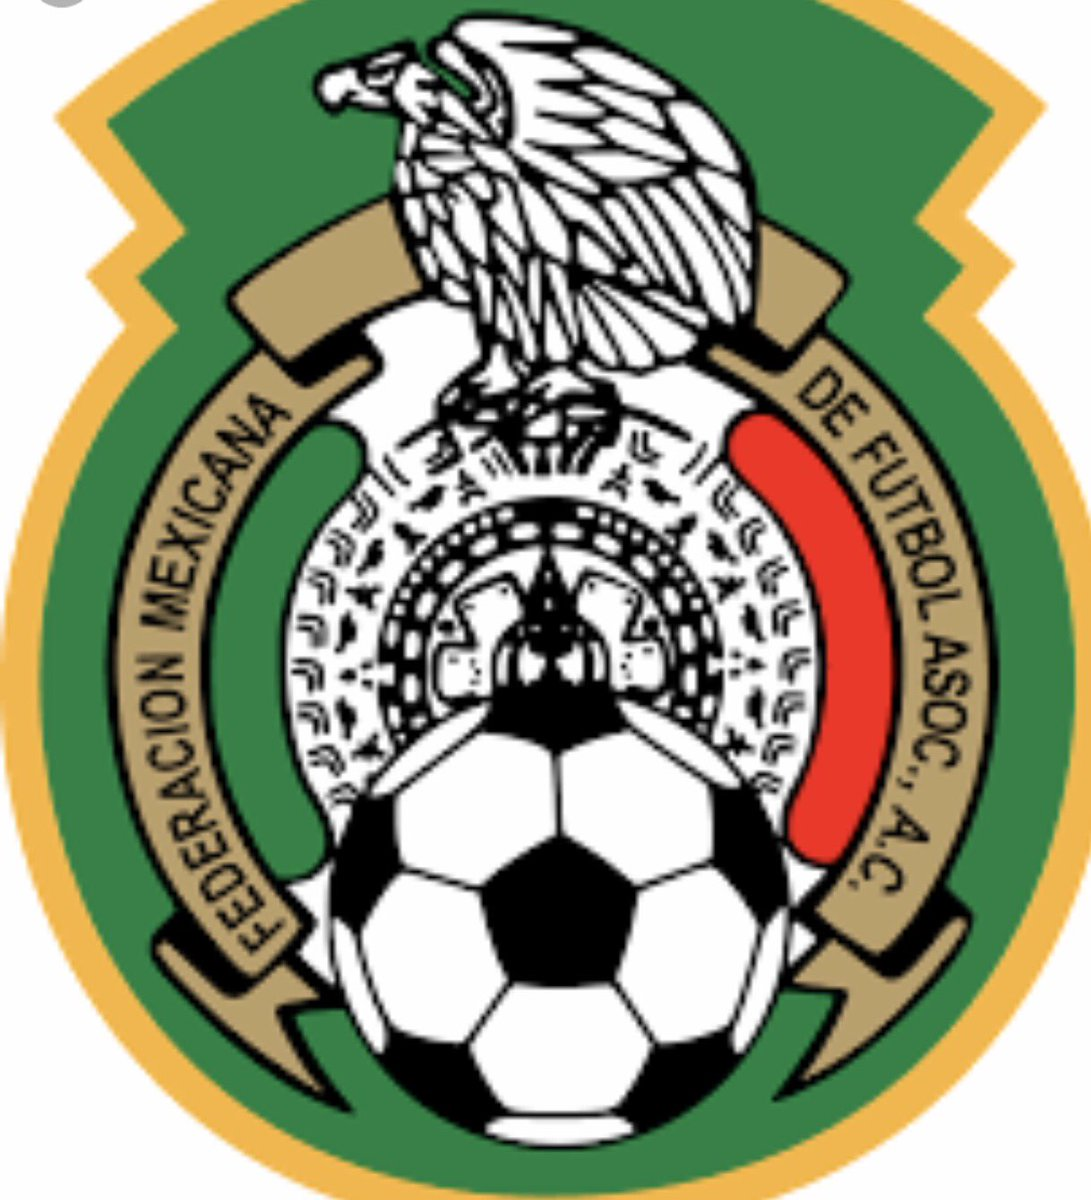 I betting on Mexico to win the @FIFAWorldCup 2018!! Look out Germany, Brazil, Italy, Spain!  VIVA MEXICO